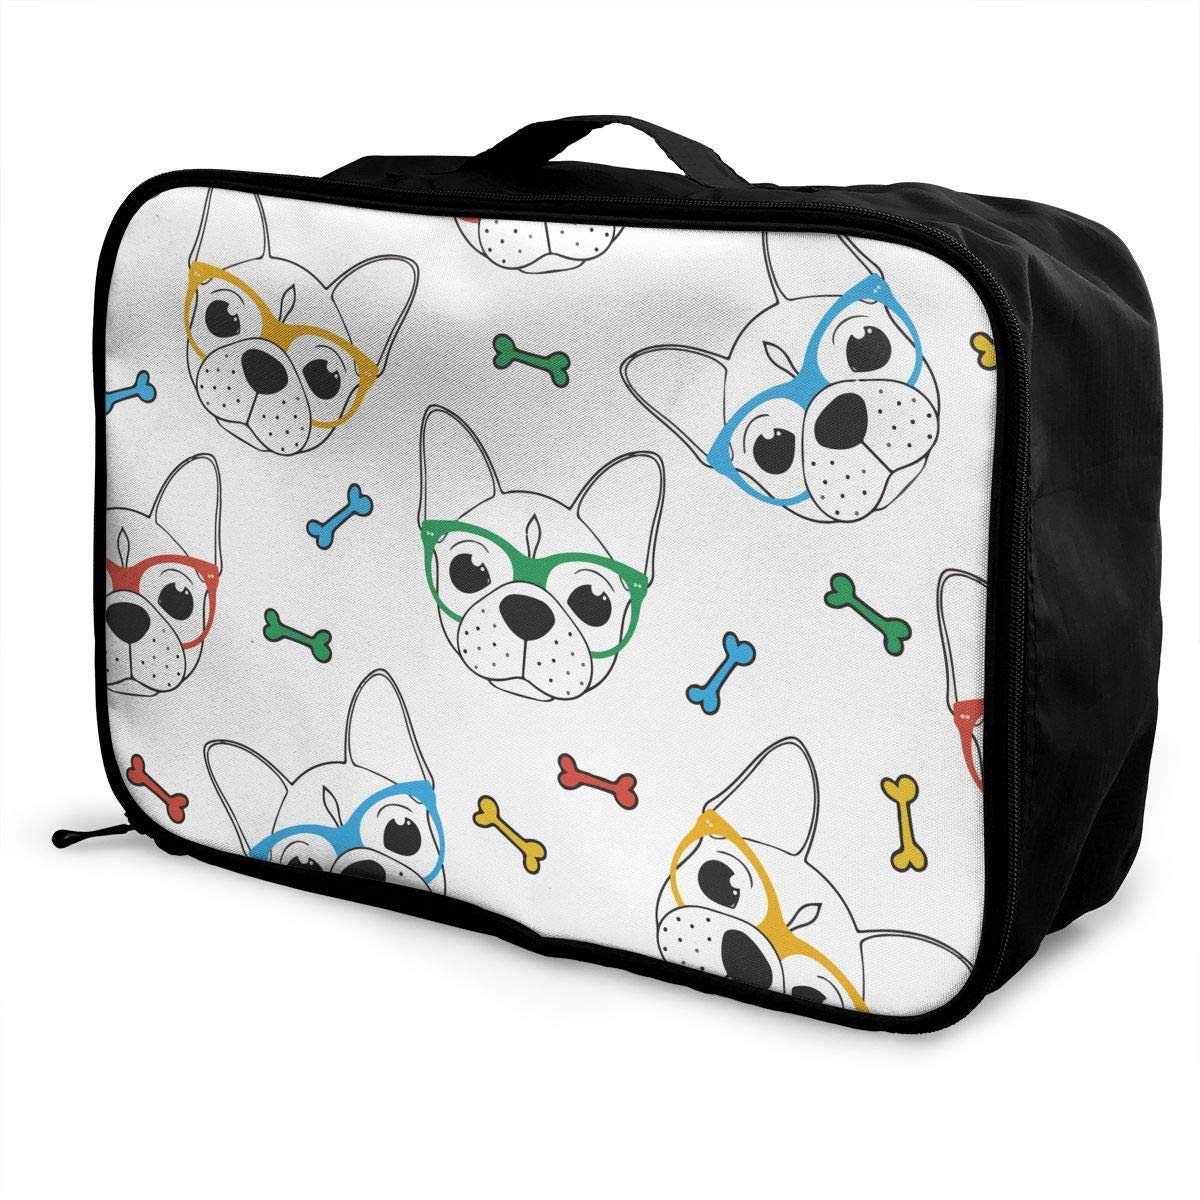 Travel Lightweight Waterproof Foldable Storage Carry Luggage Duffle Tote Bag JTRVW Luggage Bags for Travel English Bulldog Glasses